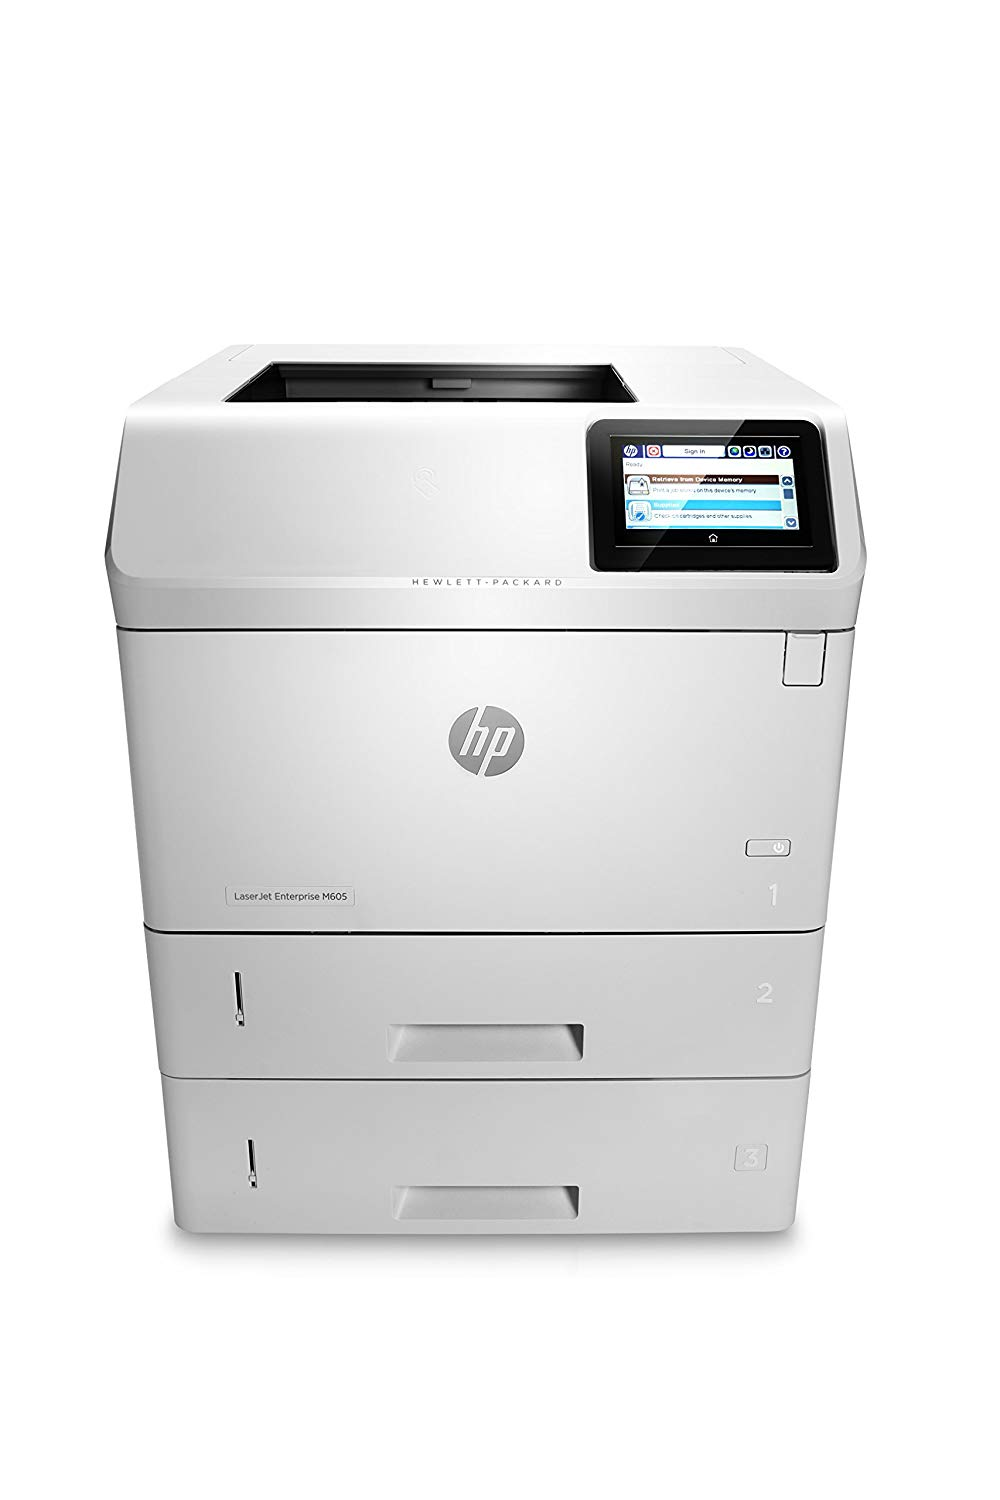 Best office printers in 2018